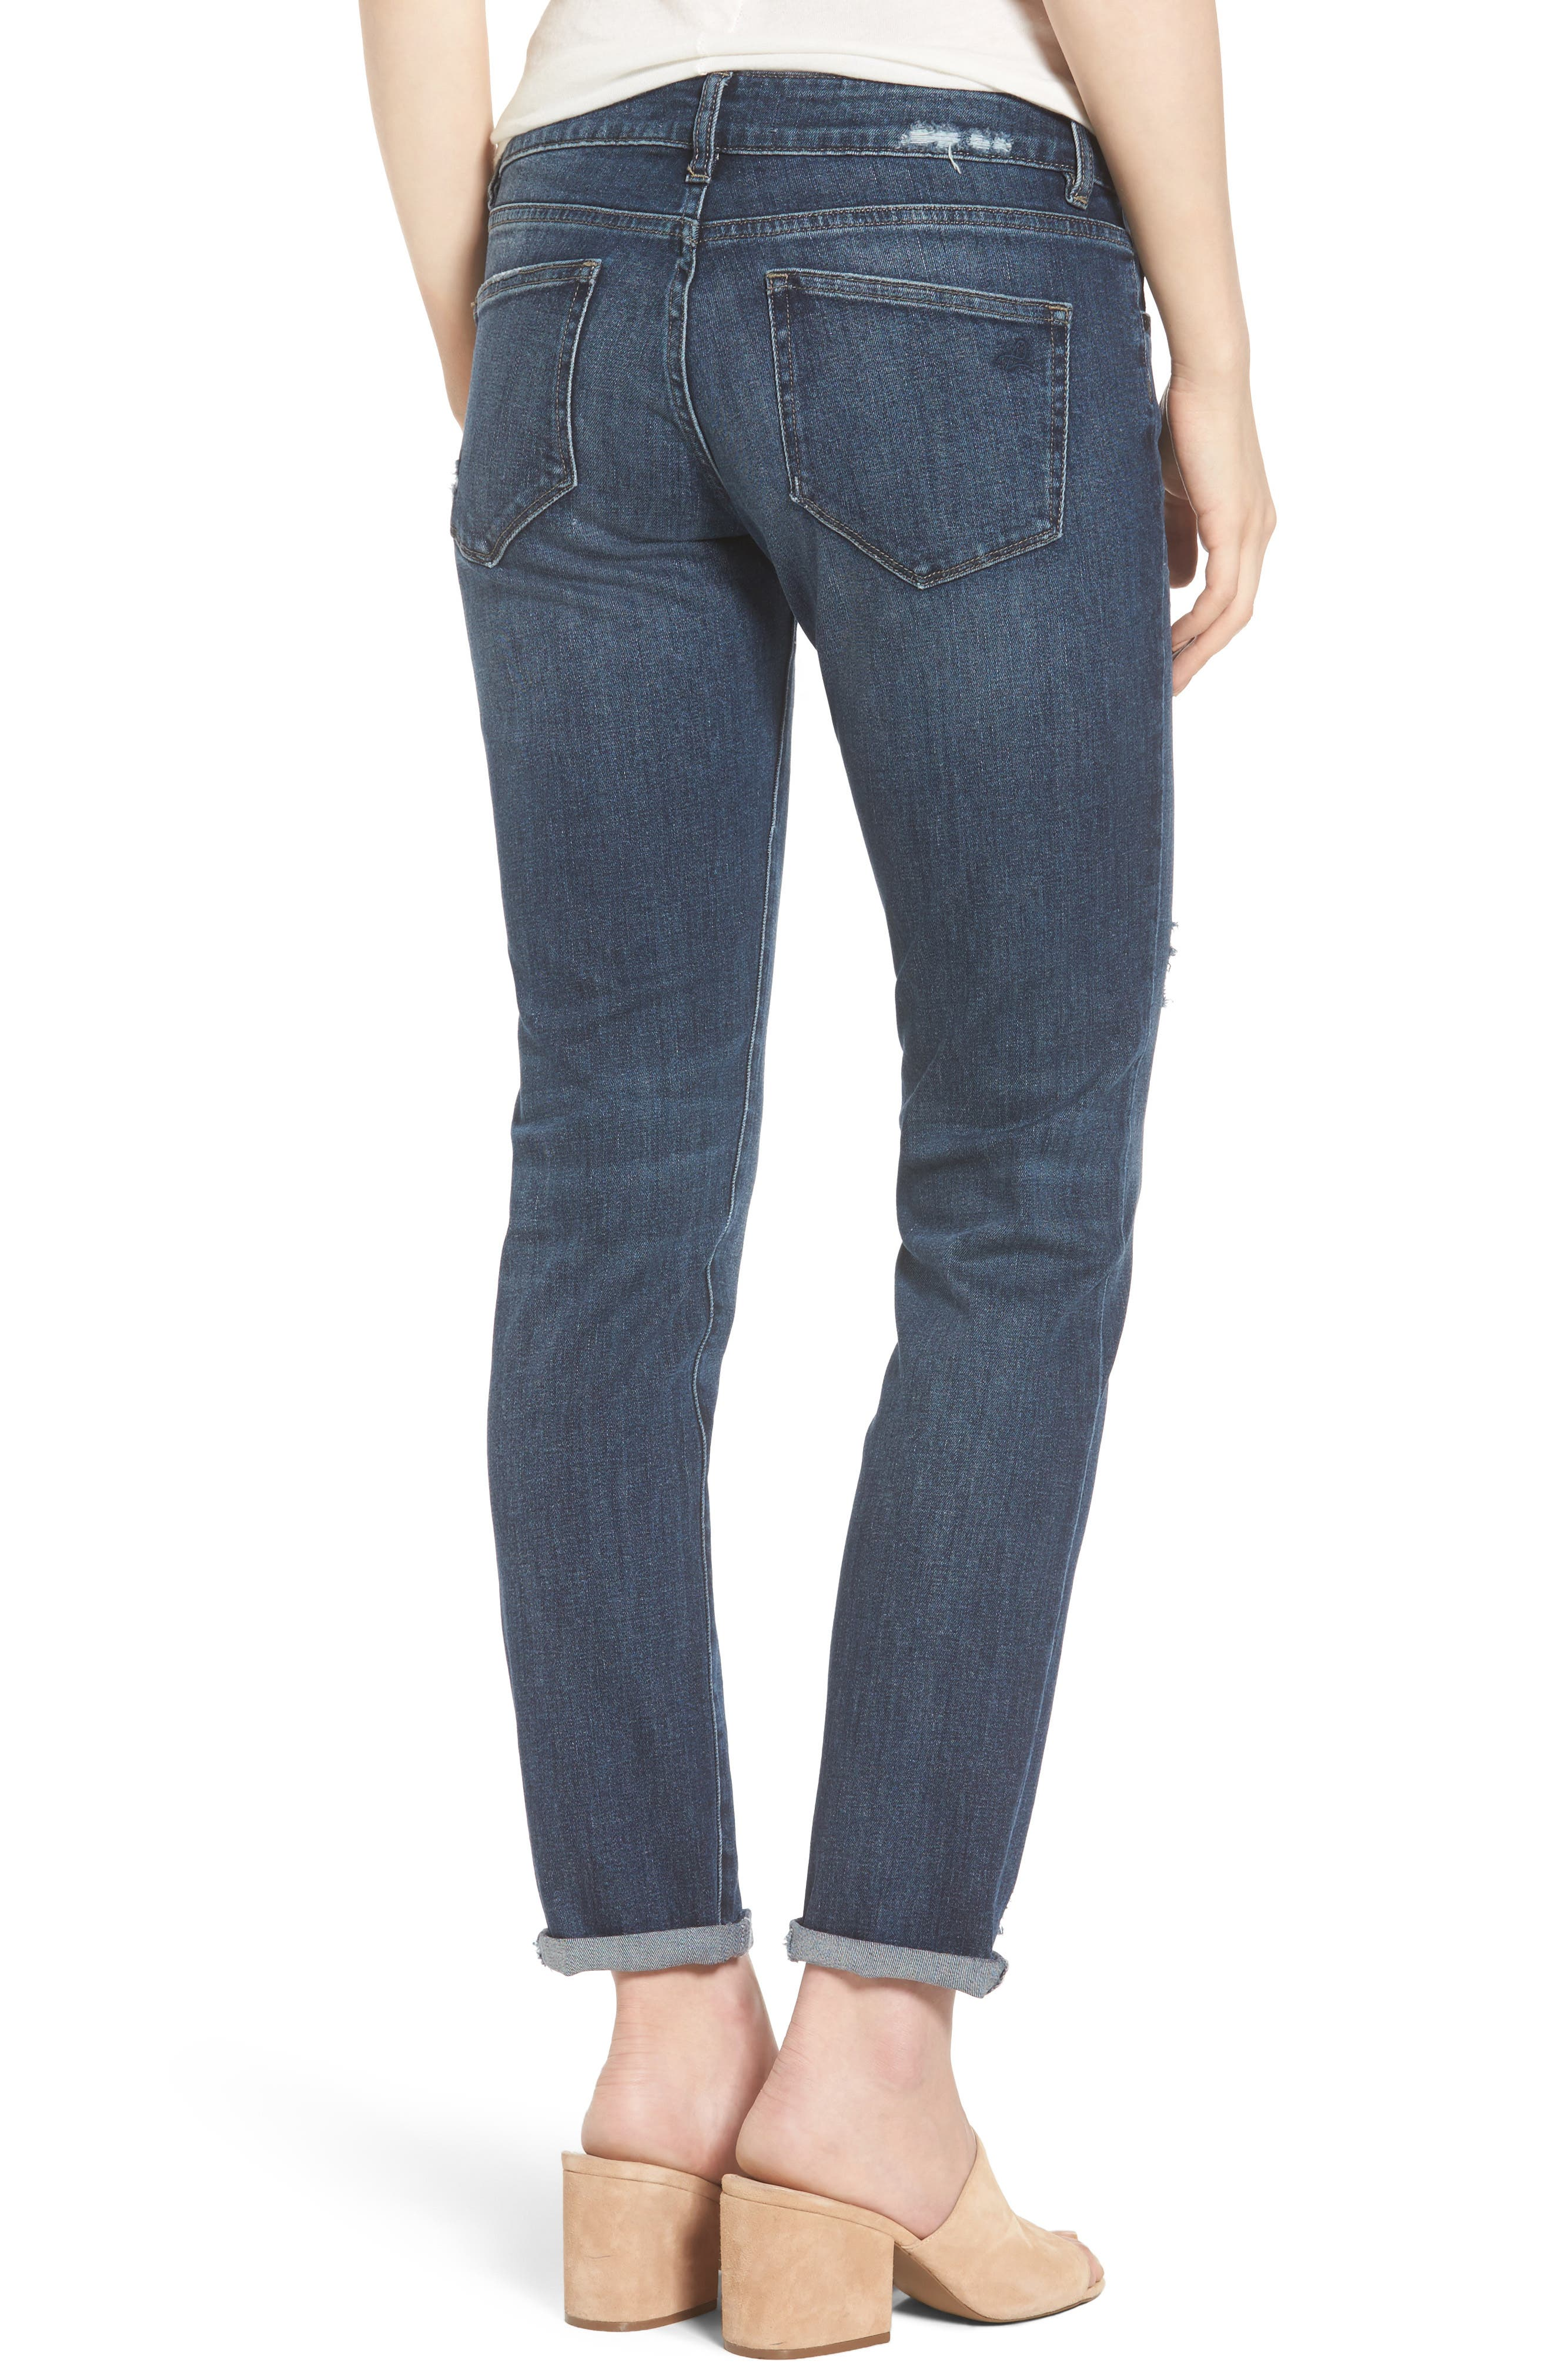 Alternate Image 2  - DL1961 Riley Boyfriend Jeans (Hayden)